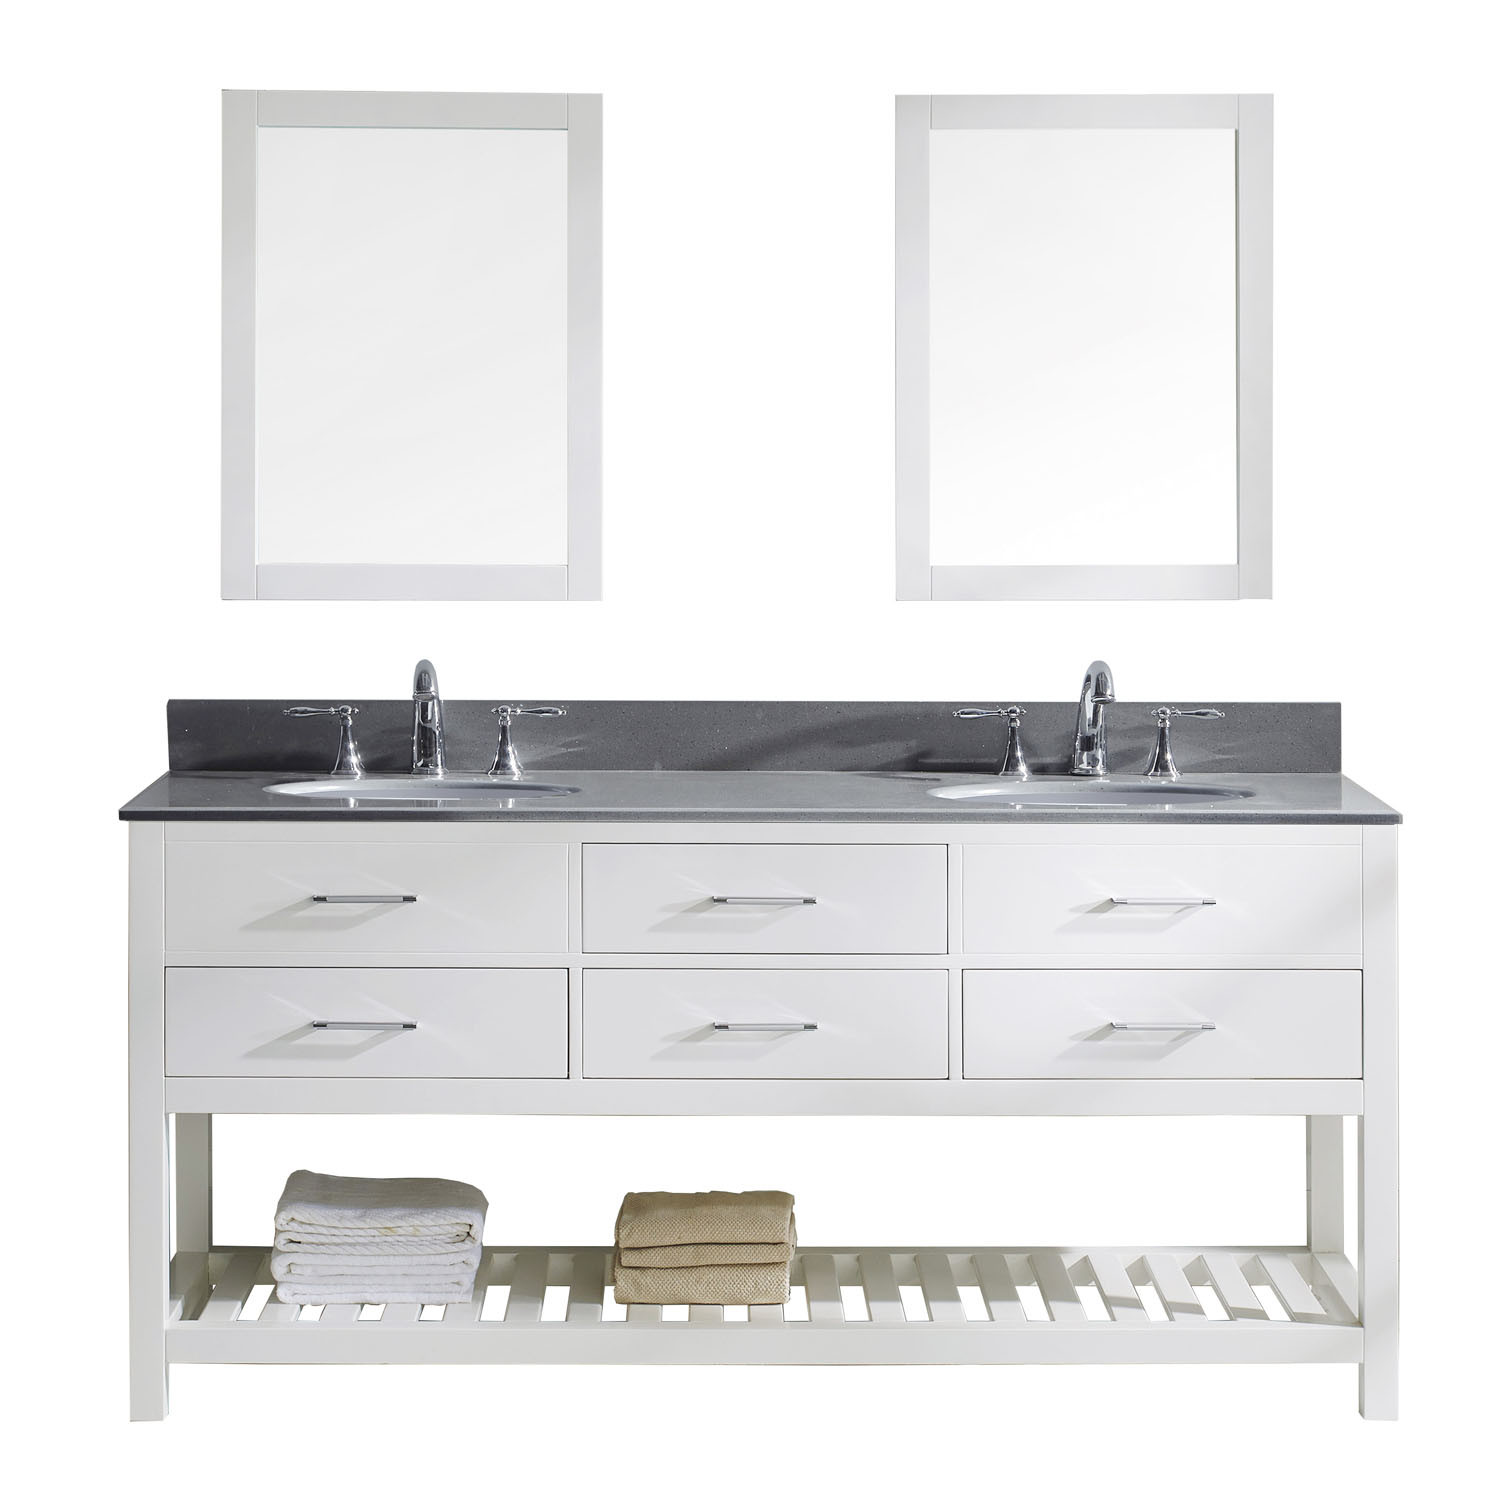 Virtu MD-2272-GQRO-WH-002 Caroline Estate 72 Inch Double Bathroom Vanity Set In White